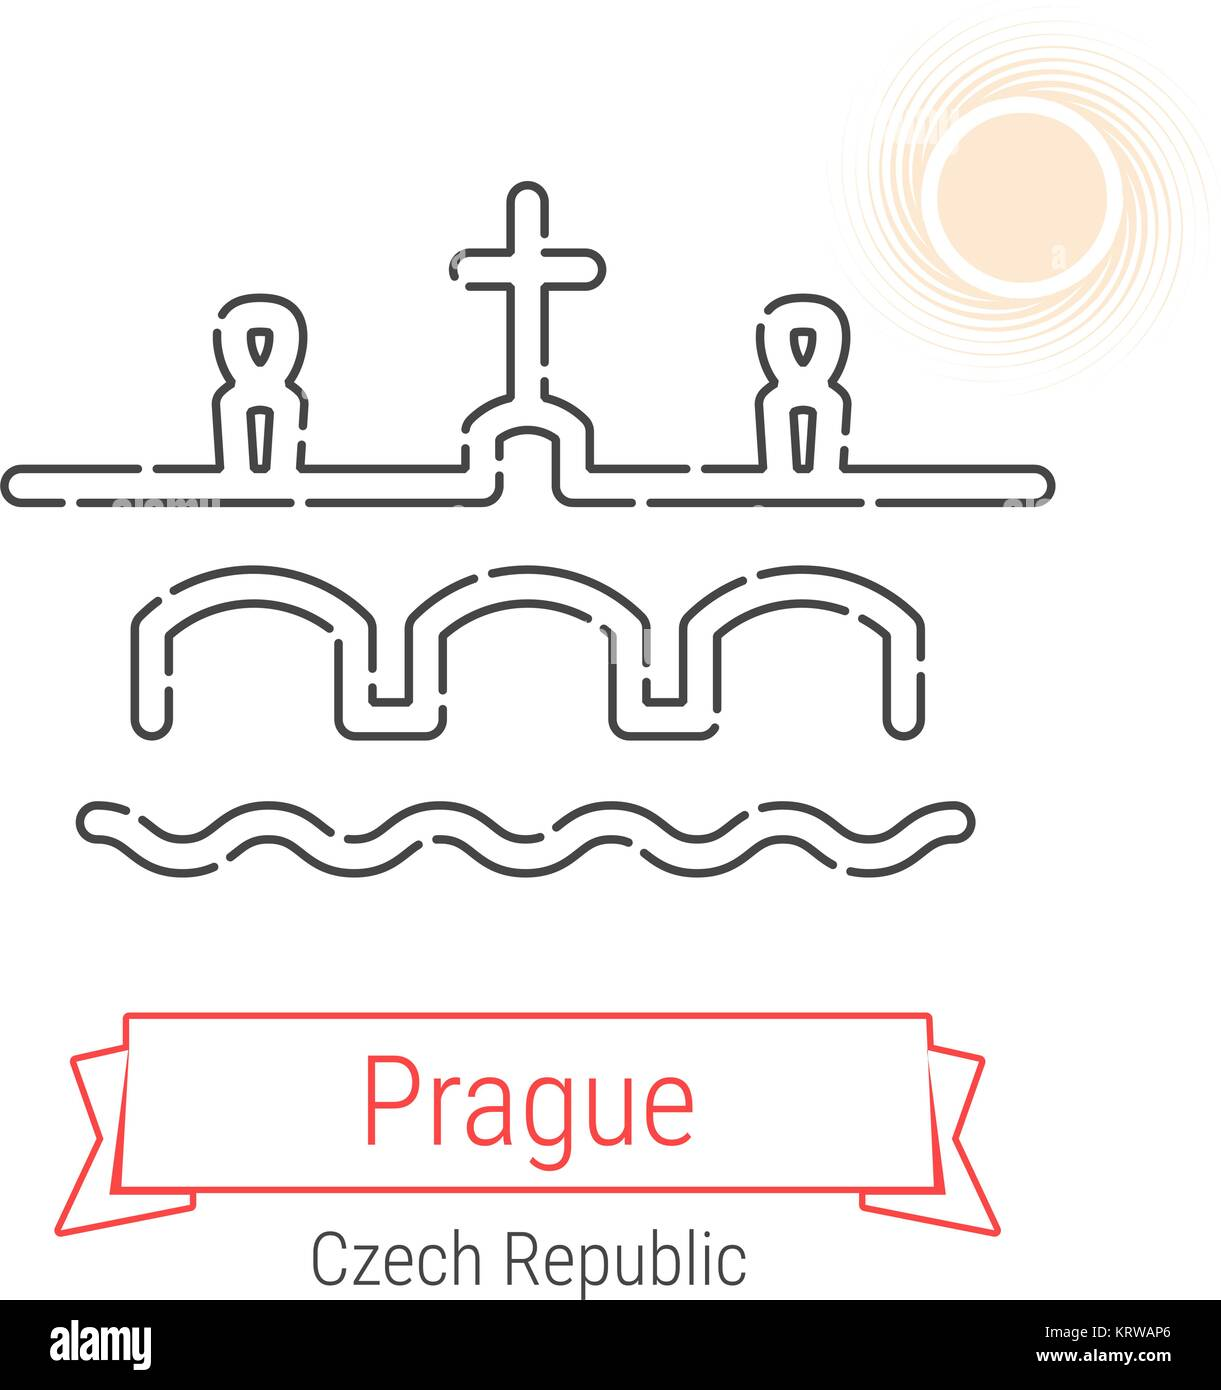 Prague, Czech Republic Vector Line Icon with Red Ribbon Isolated on White. Prague Landmark - Emblem - Print - Label - Stock Vector